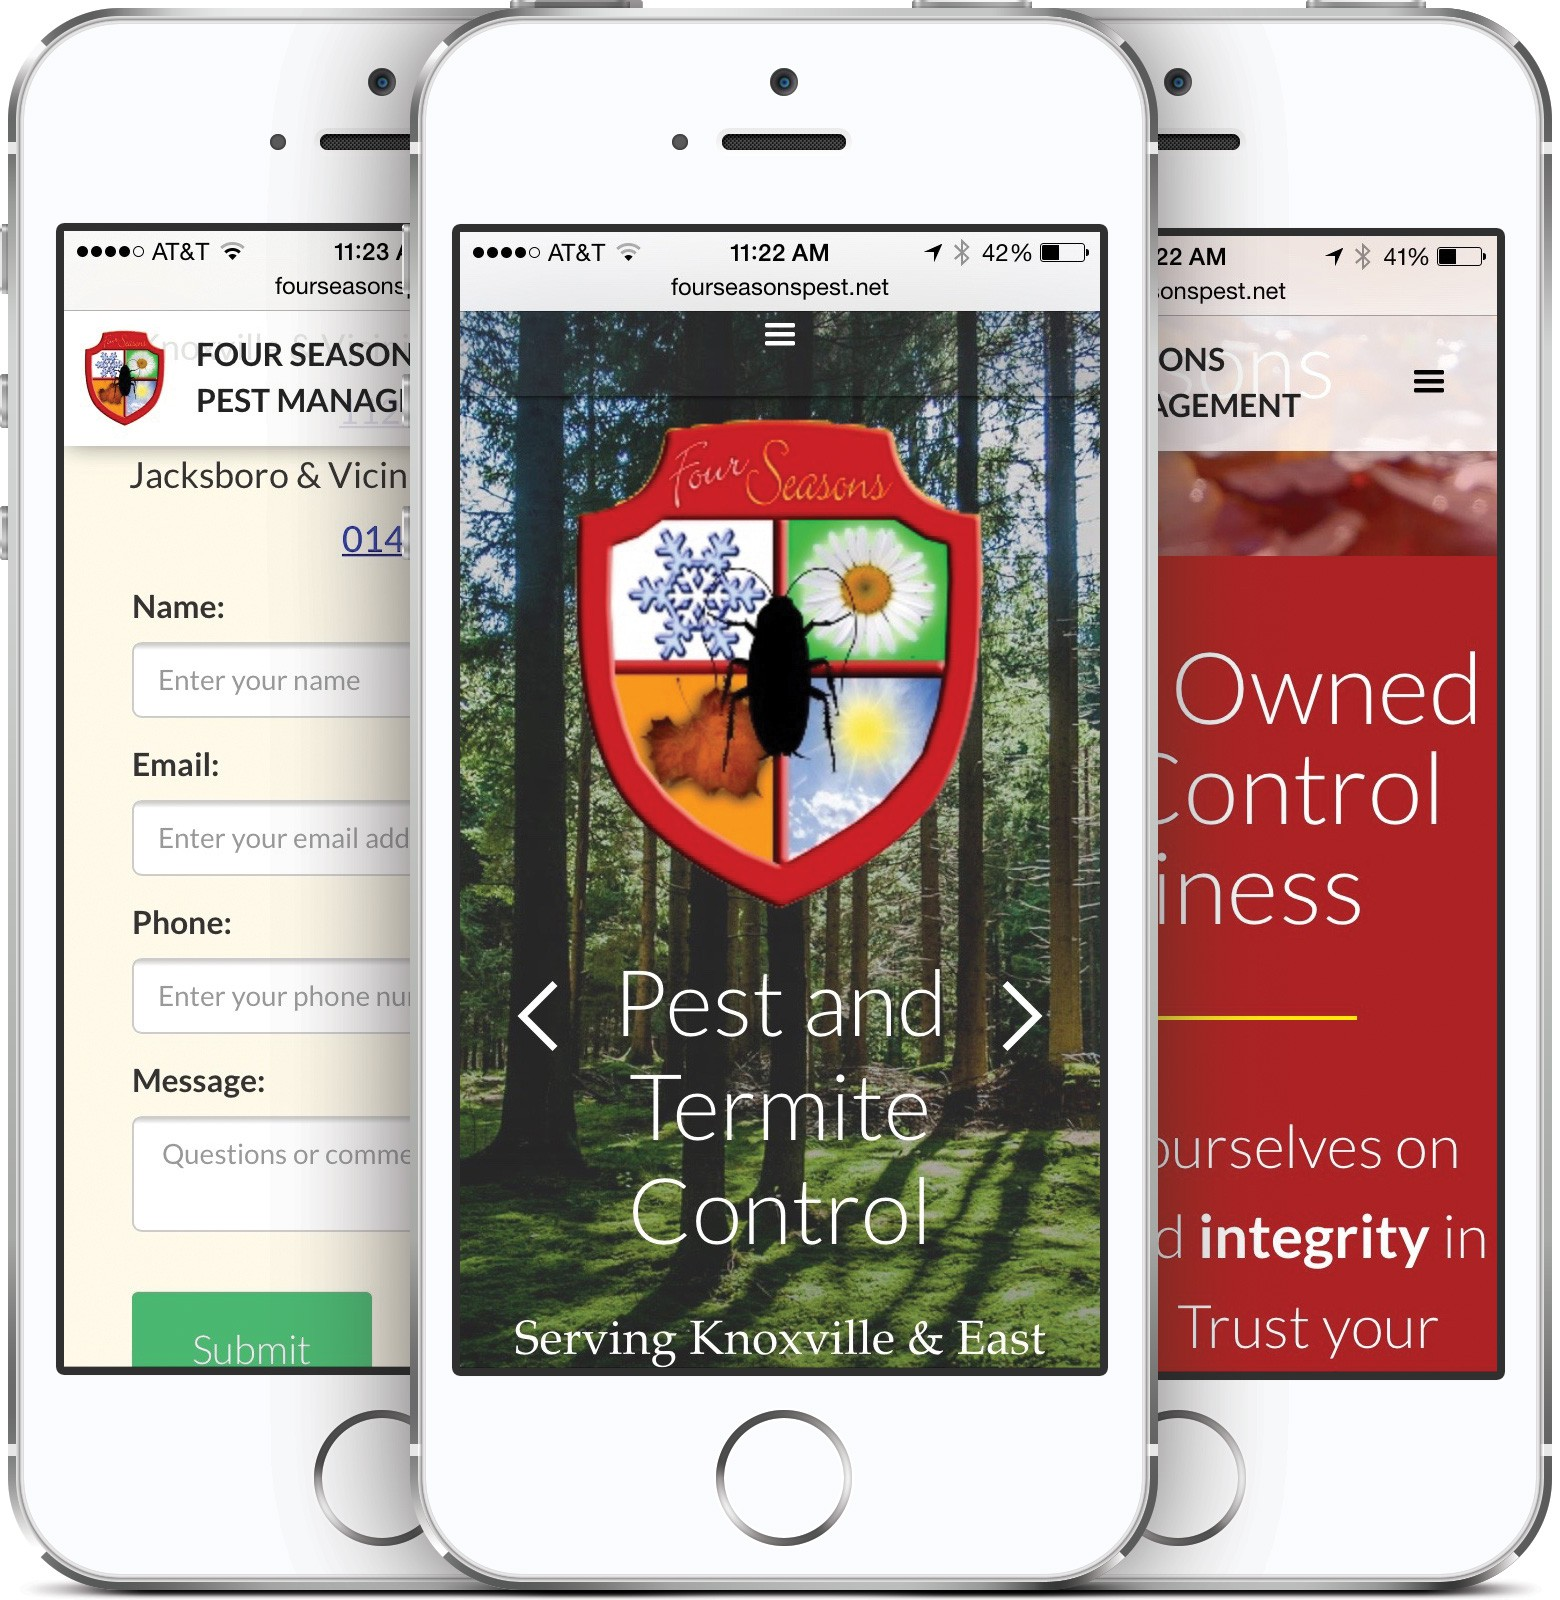 Four Seasons Pest Management on an iPhone